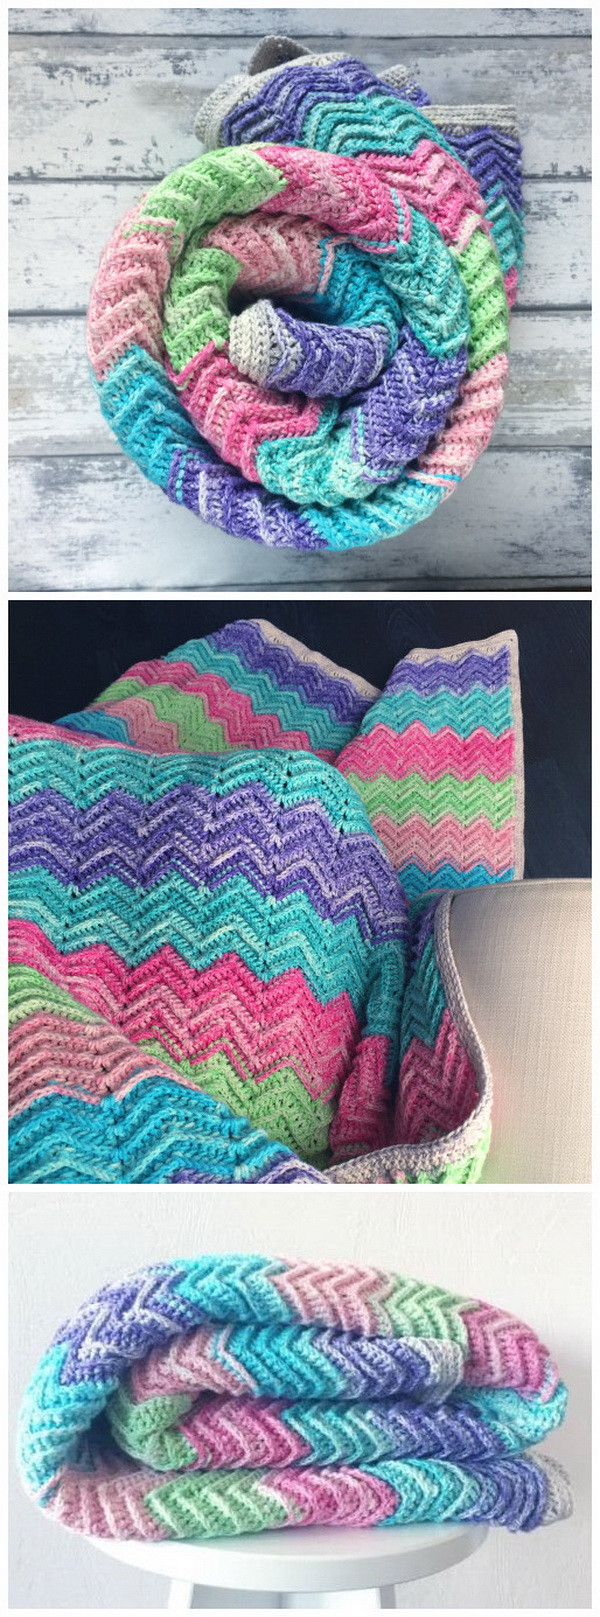 Lovely 45 Quick and Easy Crochet Blanket Patterns for Beginners Quick and Easy Crochet Patterns for Beginners Of Awesome 48 Photos Quick and Easy Crochet Patterns for Beginners